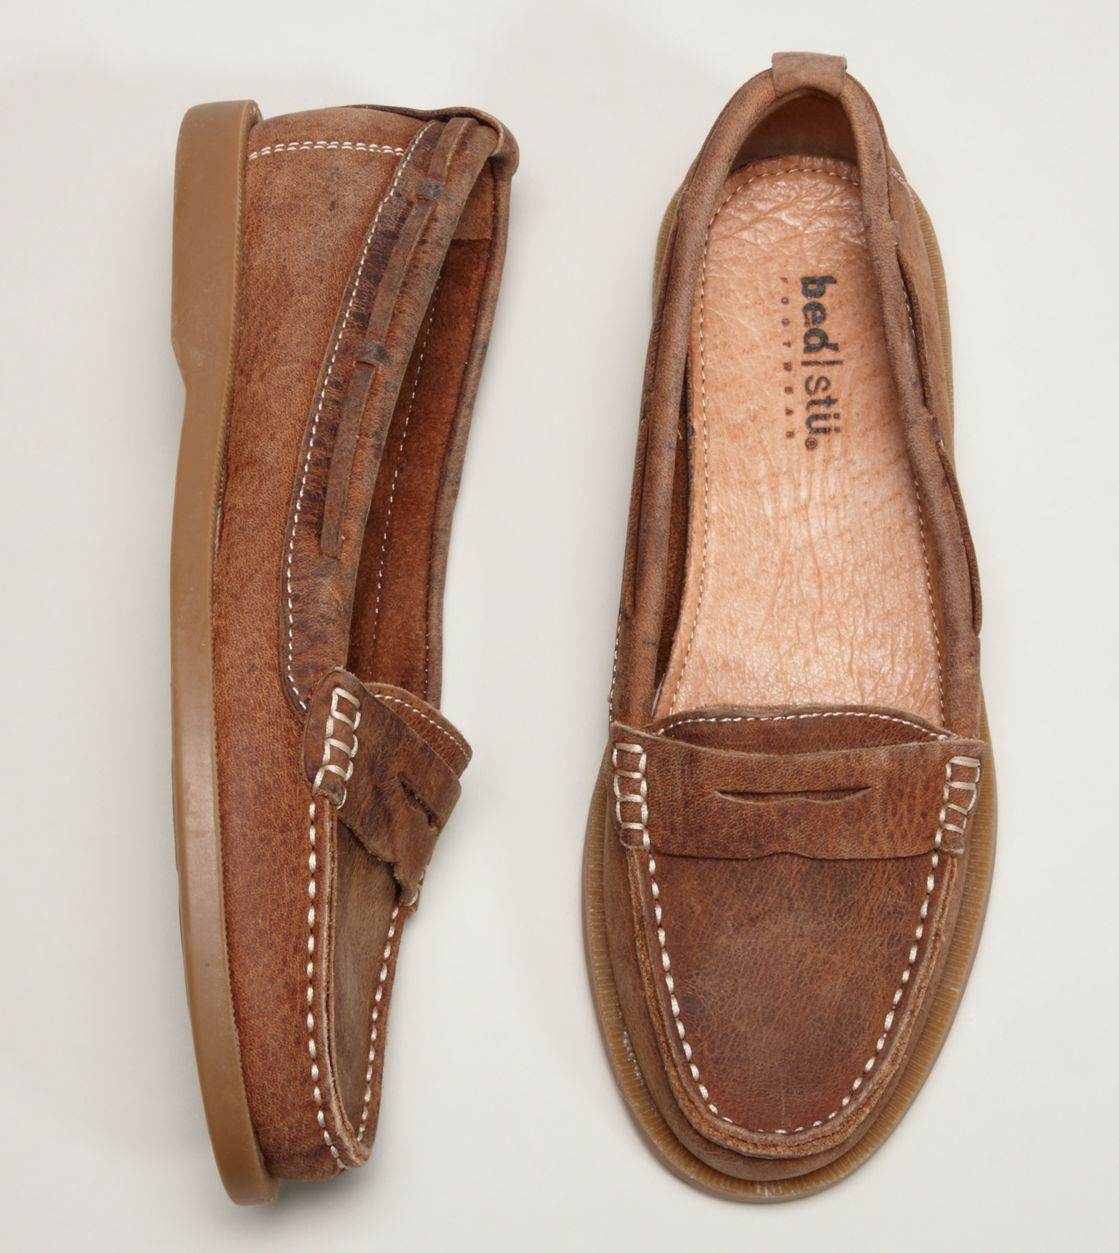 74b52f8dc3c Loving this pair from American Eagle! Everyday Shoes